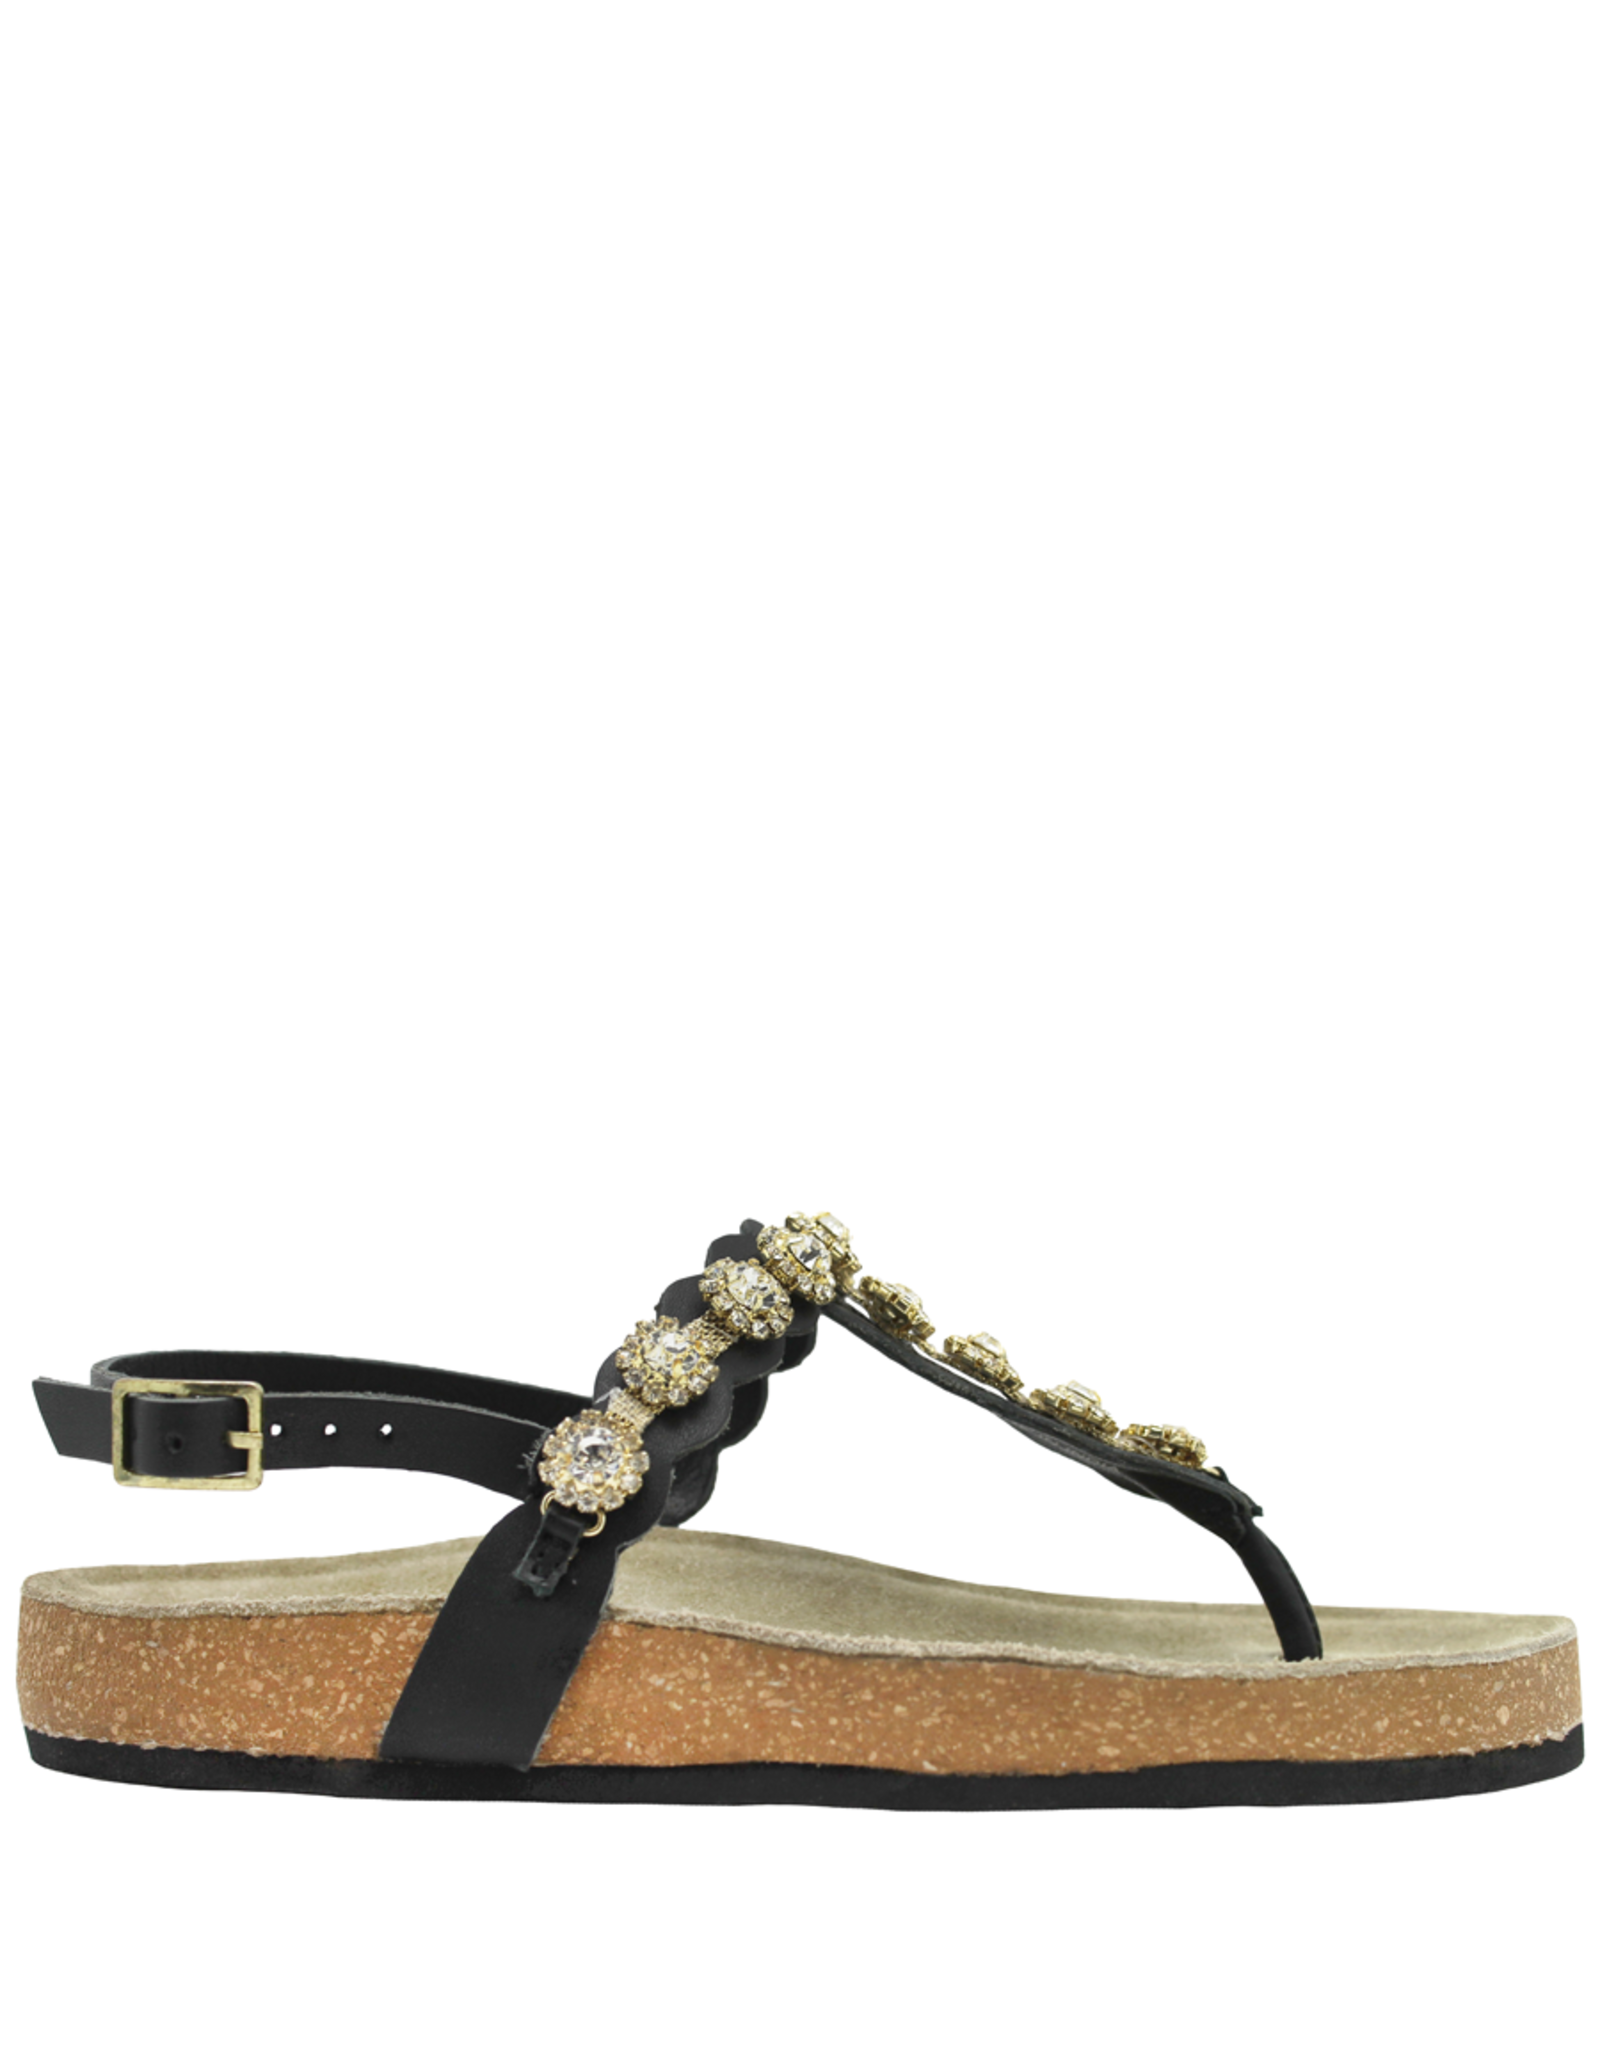 Strategia Strategia Black Sling With Crystal Florets Thong Cork Footbed 4548